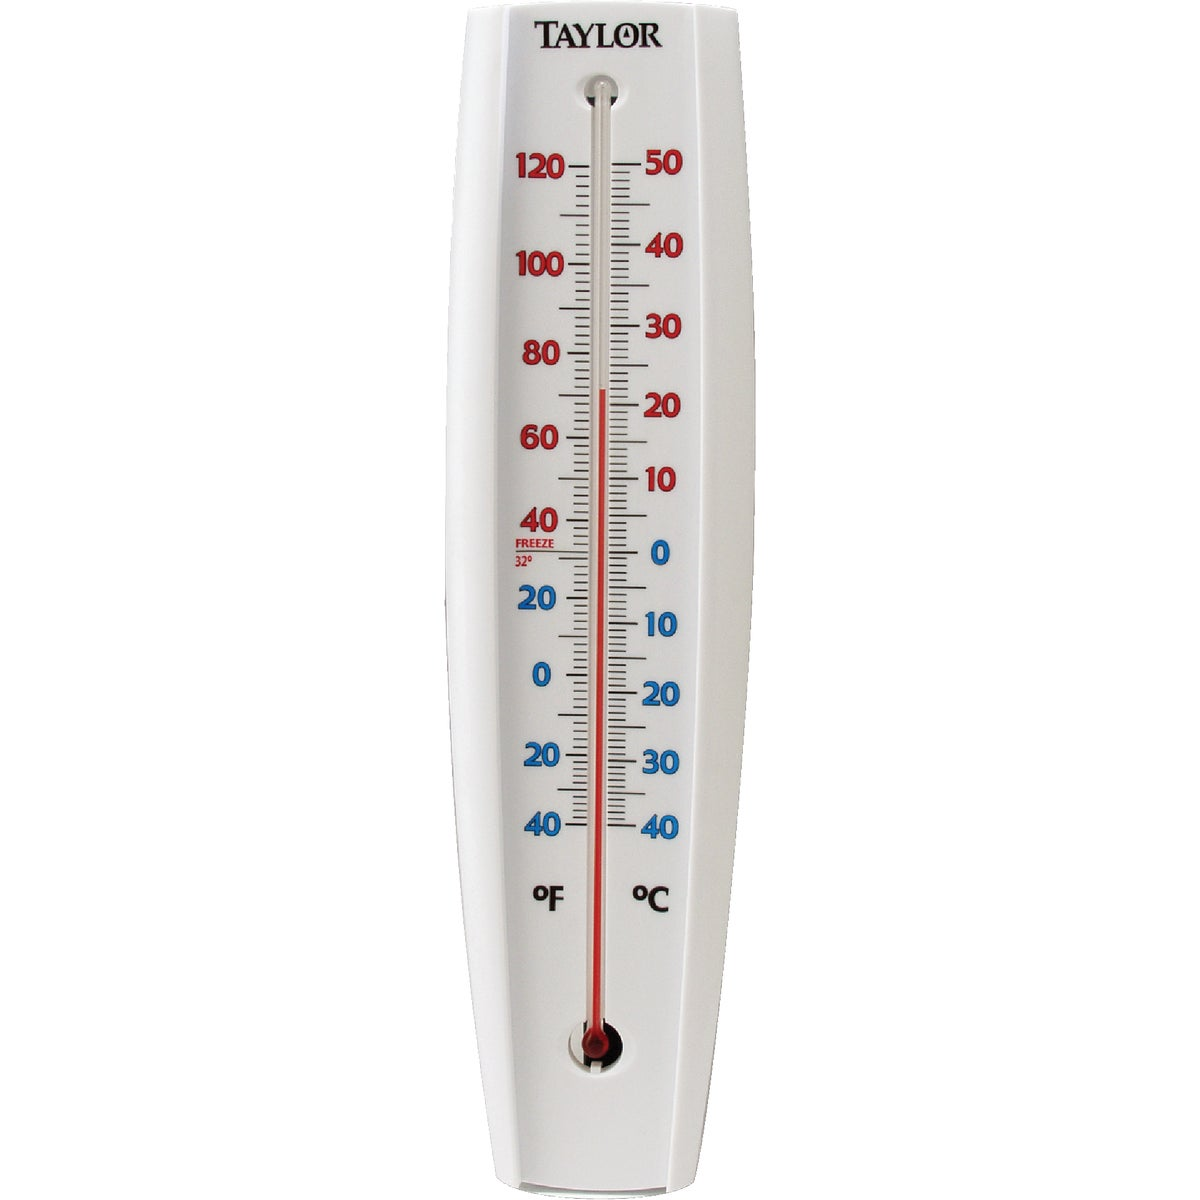 JUMBO WALL THERMOMETER - 5109 by Taylor Precision